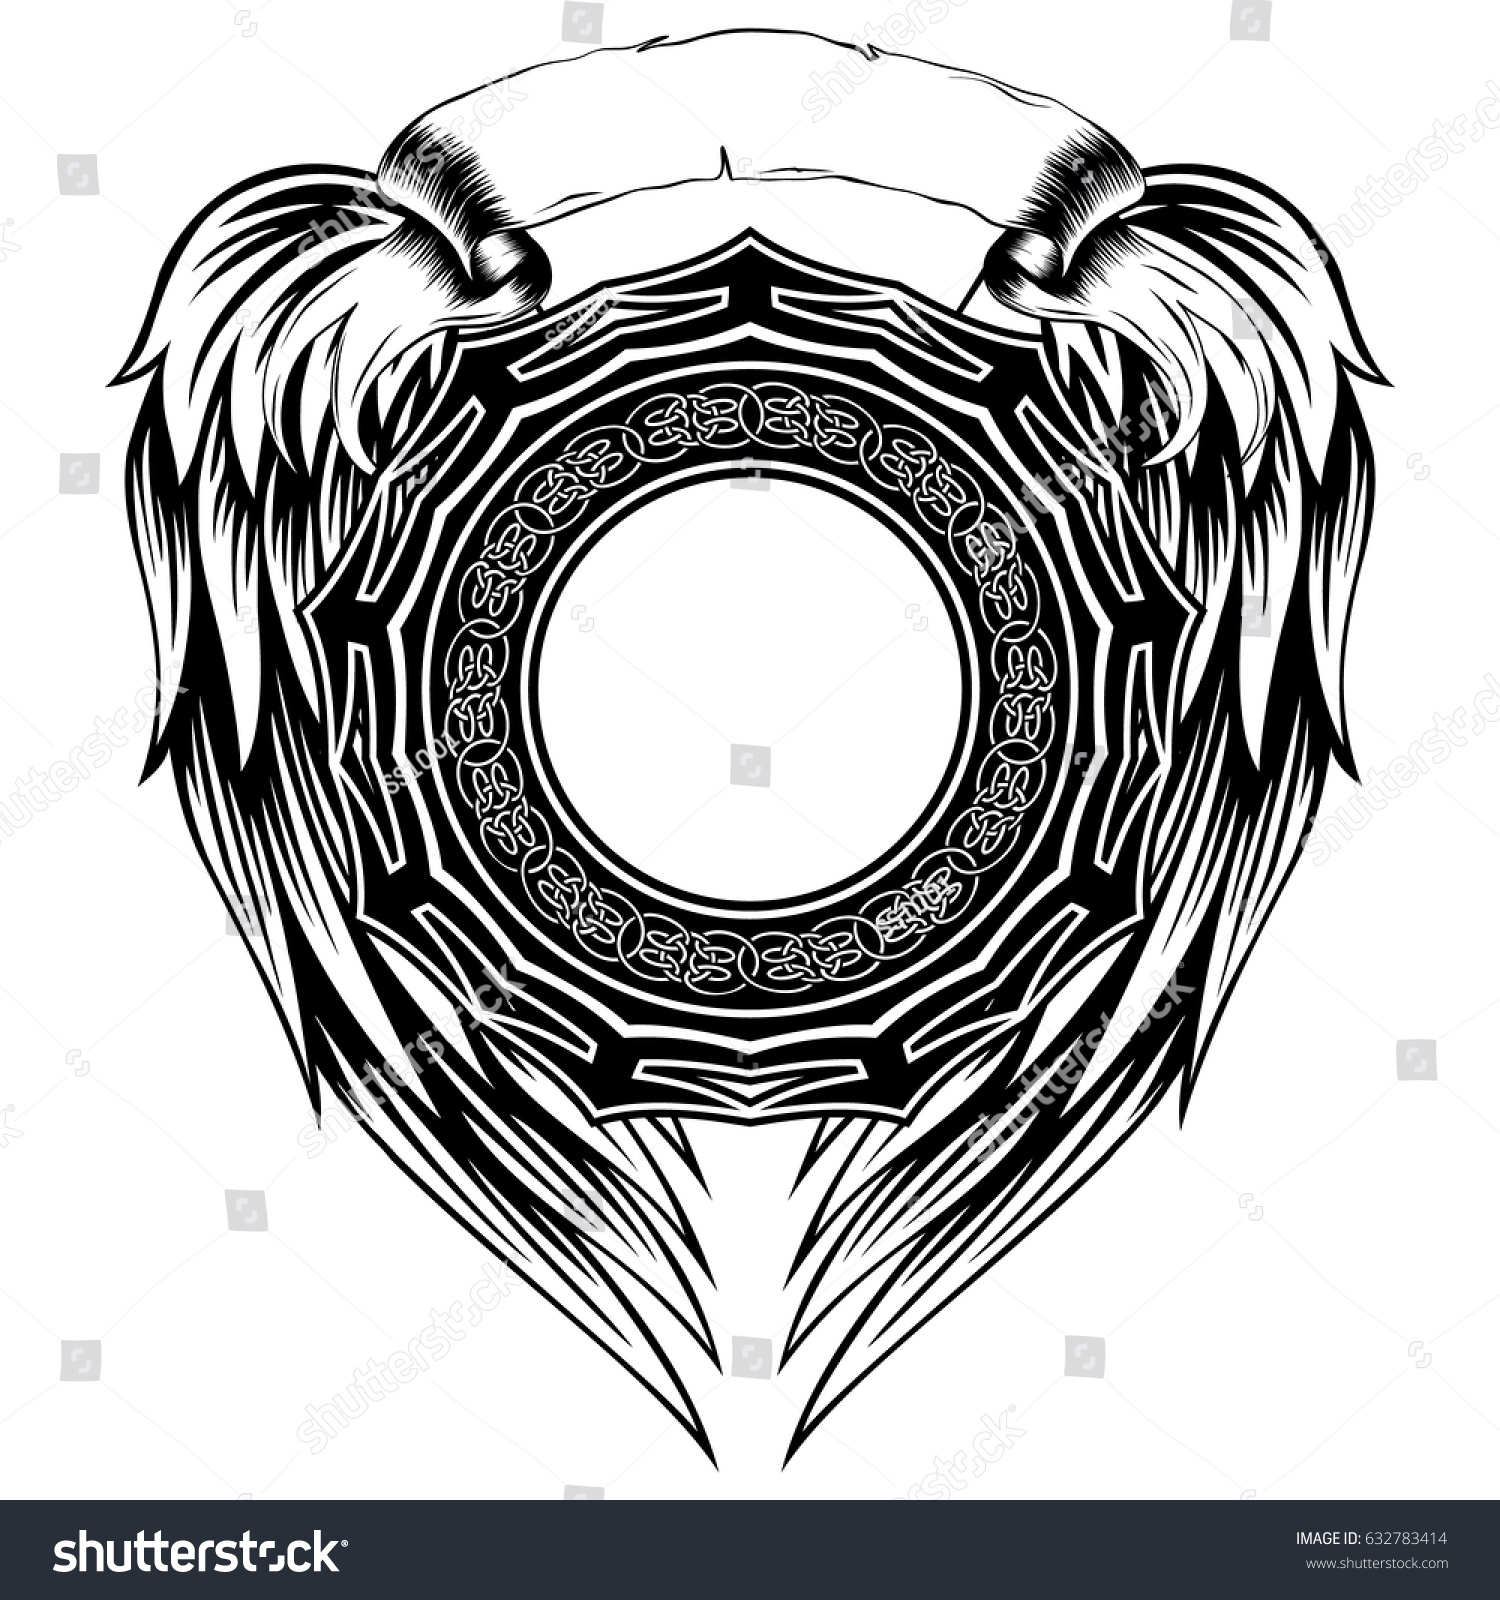 Abstract Vector Black White Illustration Round Stock Vector